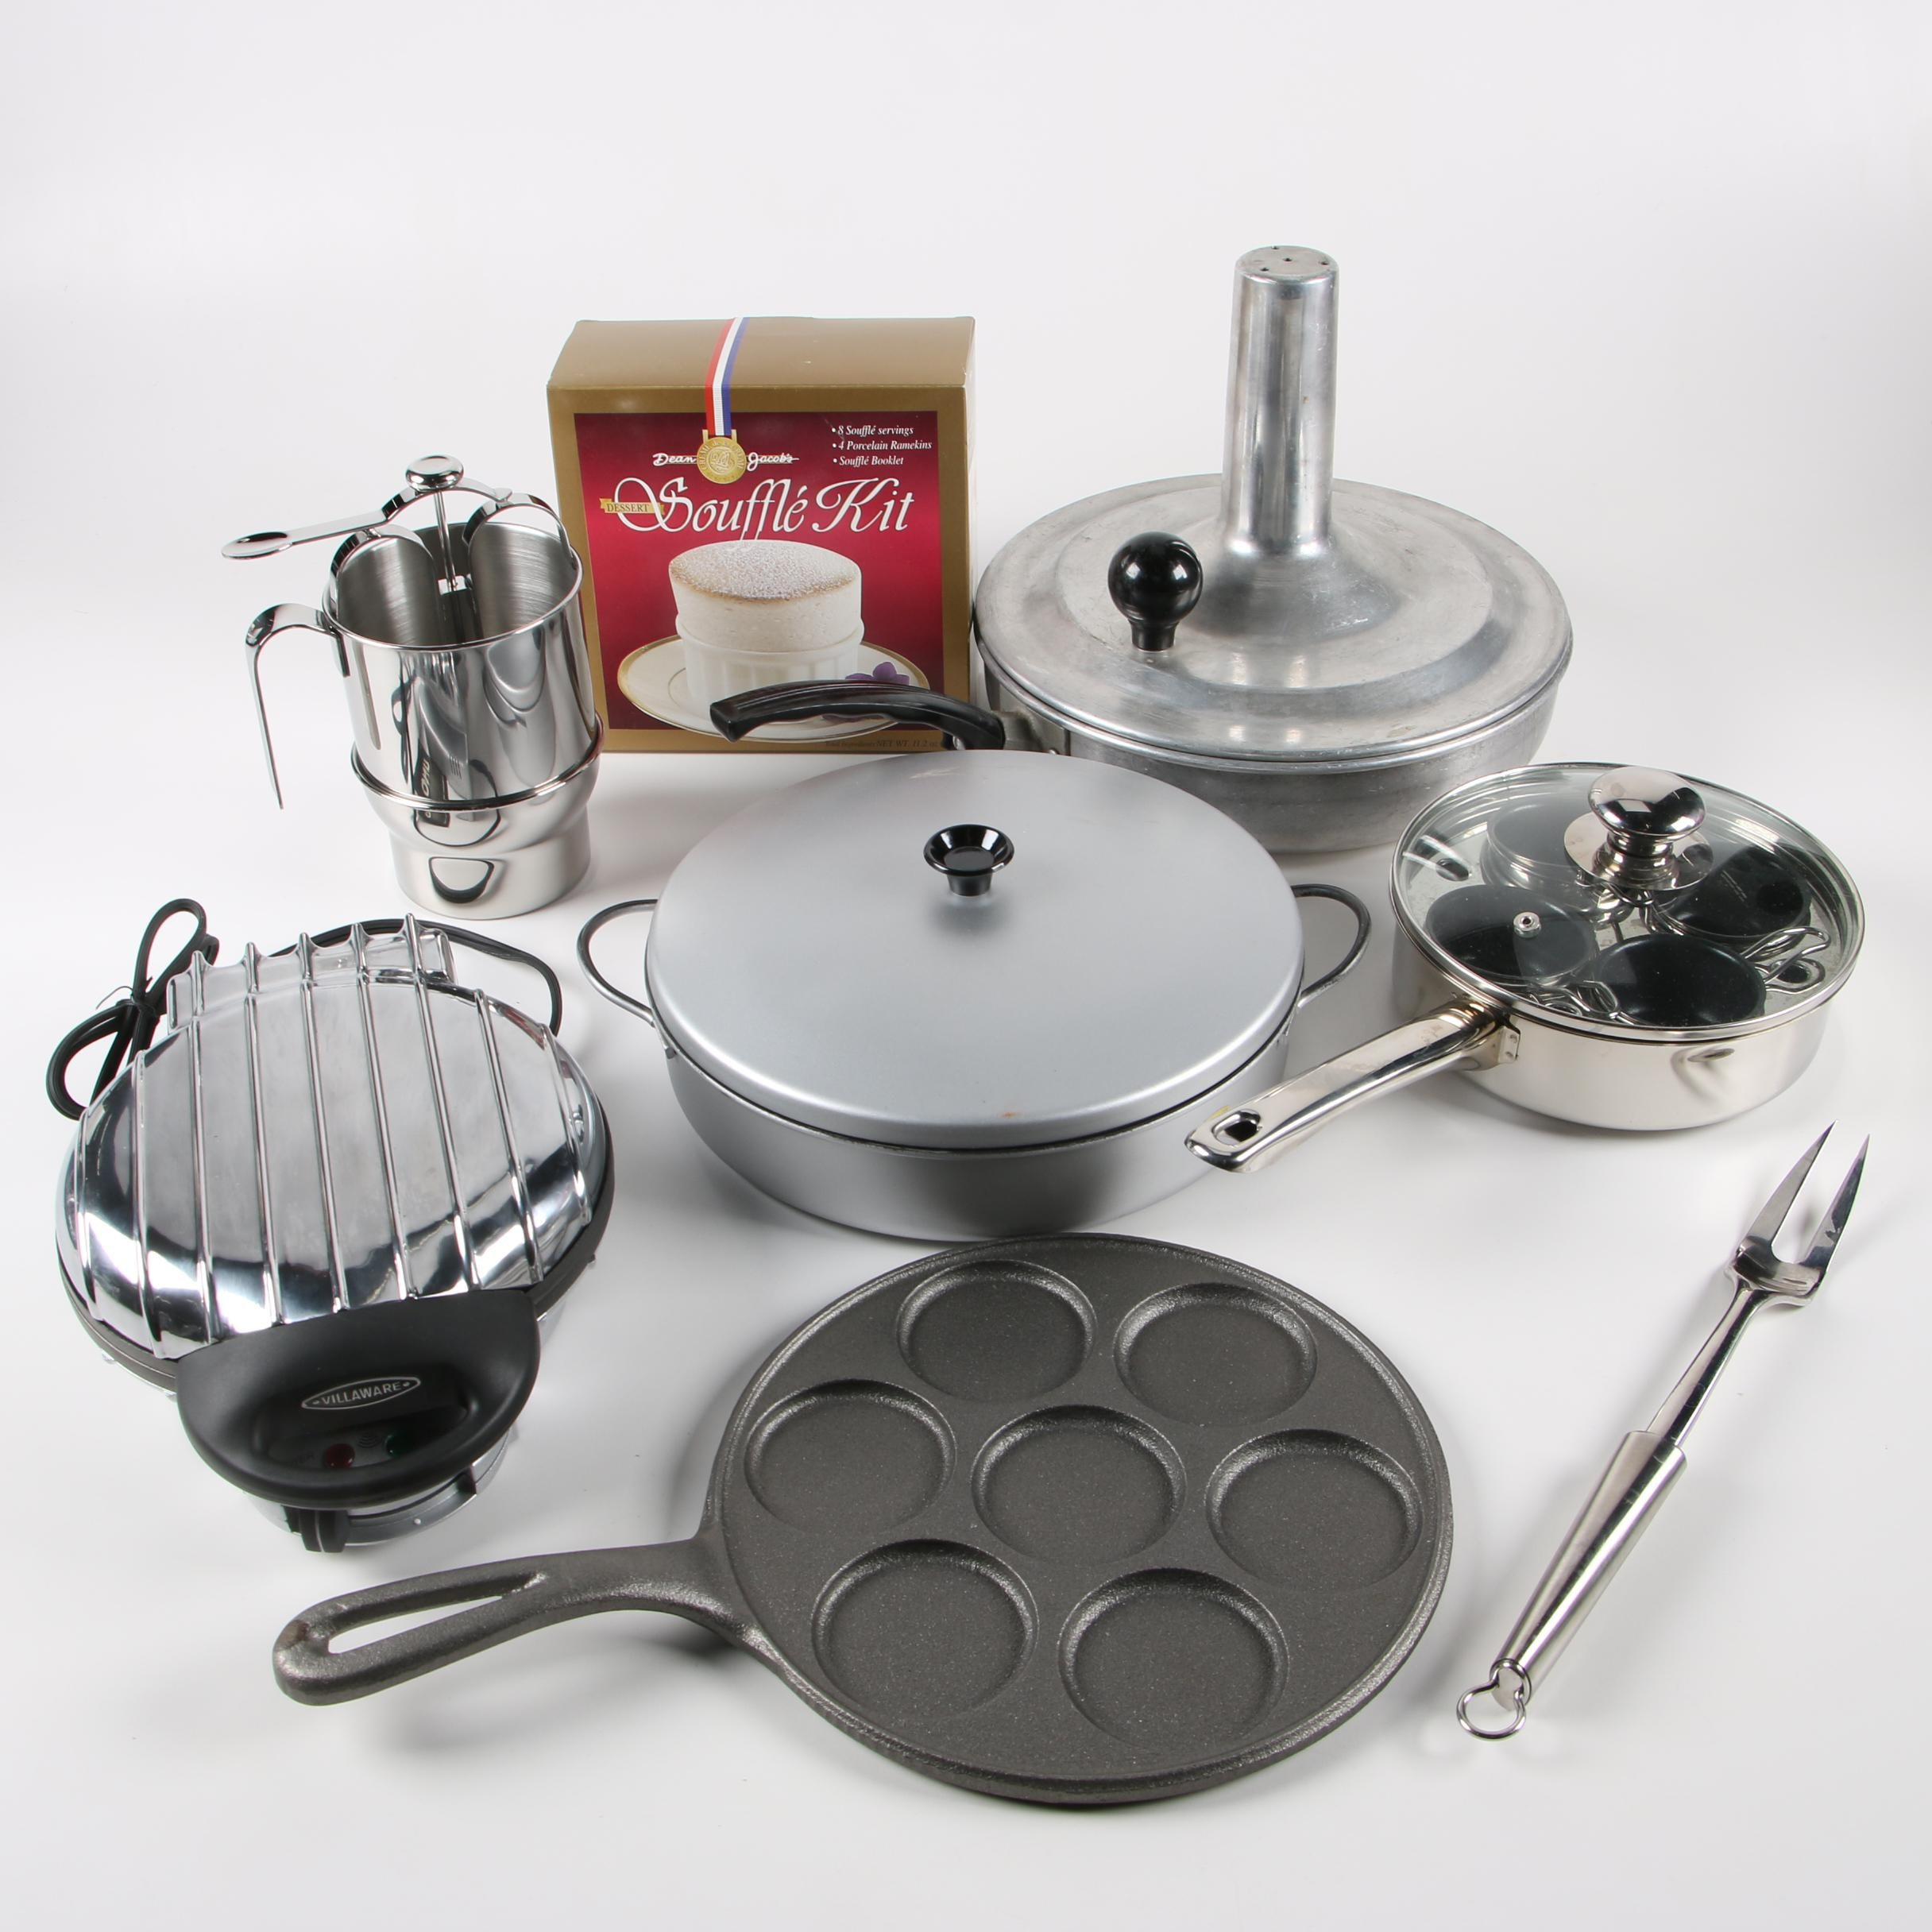 Villaware Waffle Maker and Other Cookware